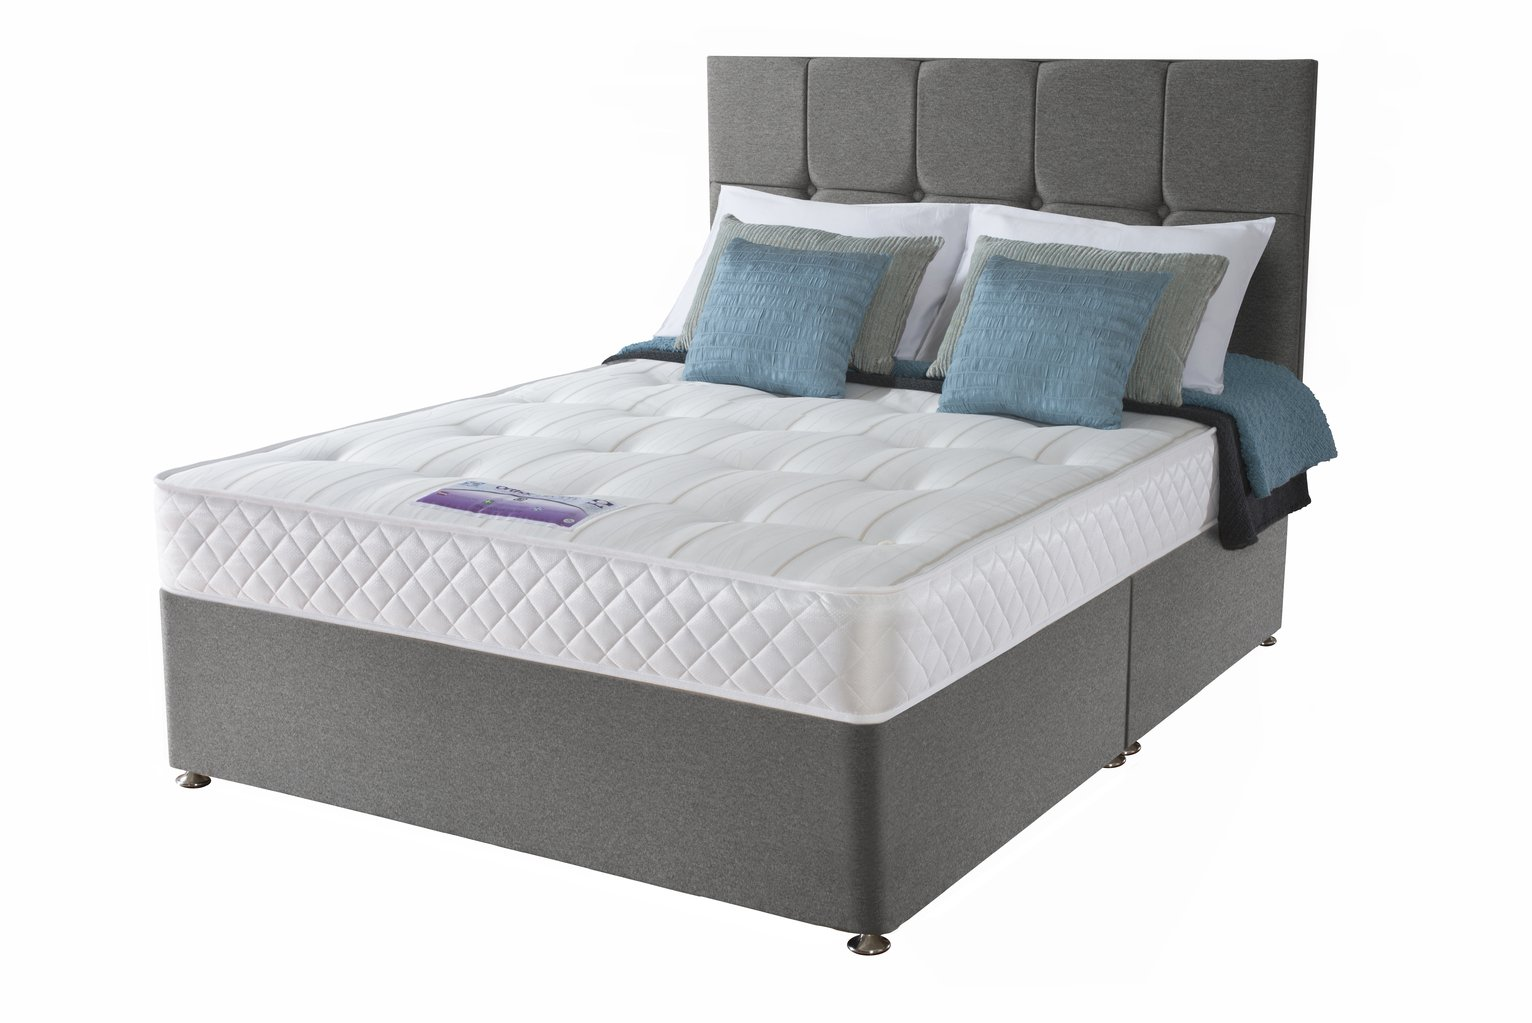 Sealy - Posturepedic Firm Ortho - Double - Divan Bed at Argos